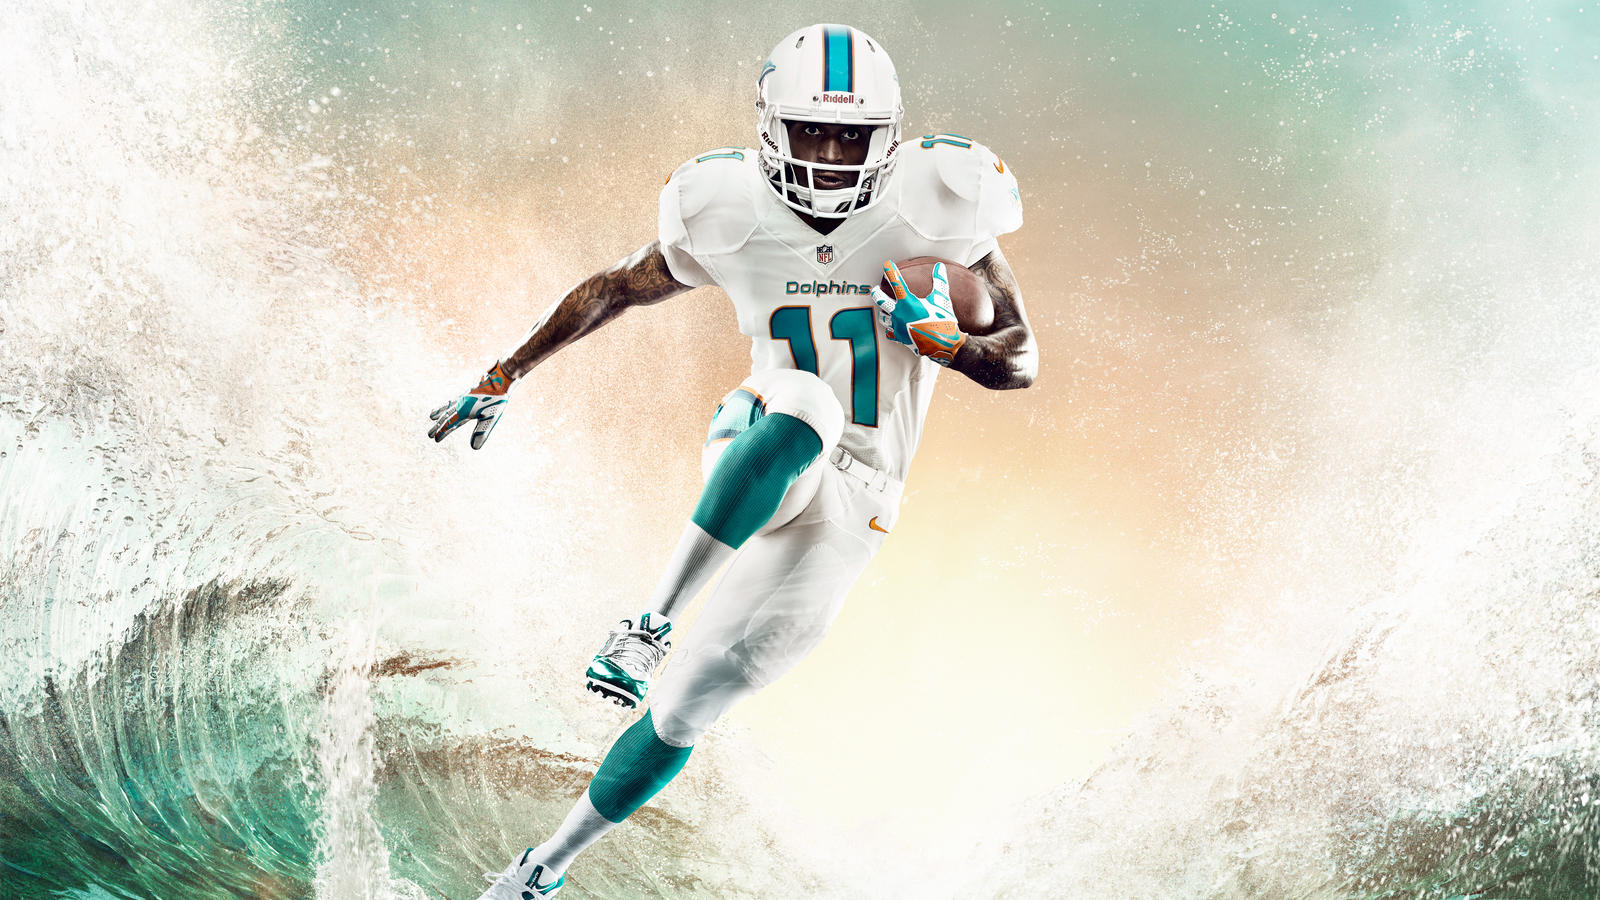 Miami Dolphins Unveil New Uniform Design for 2013 Season - Nike News c637c9c22